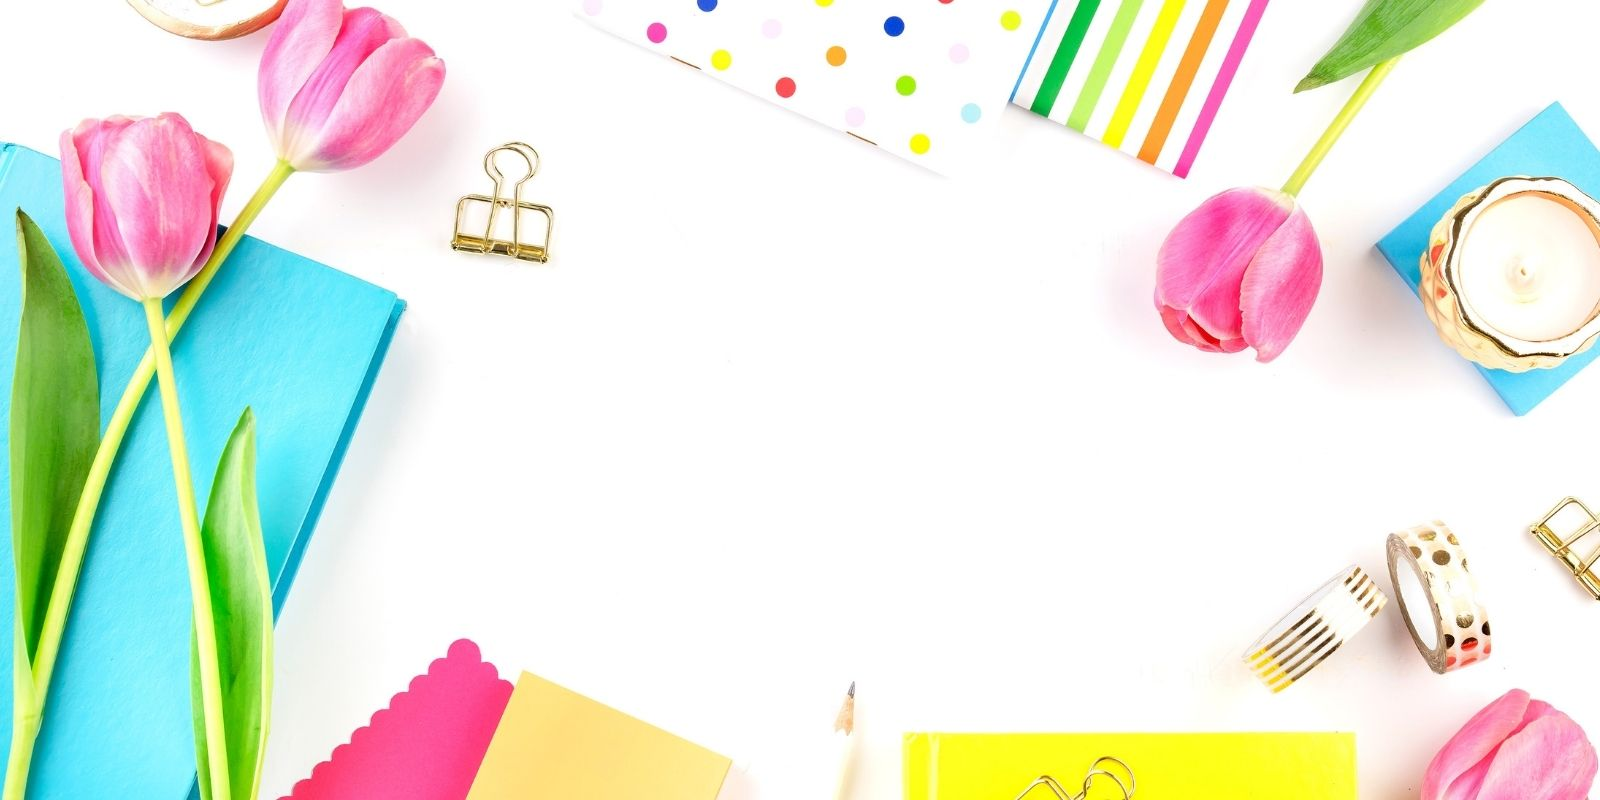 Colorful desktop accessories on white background